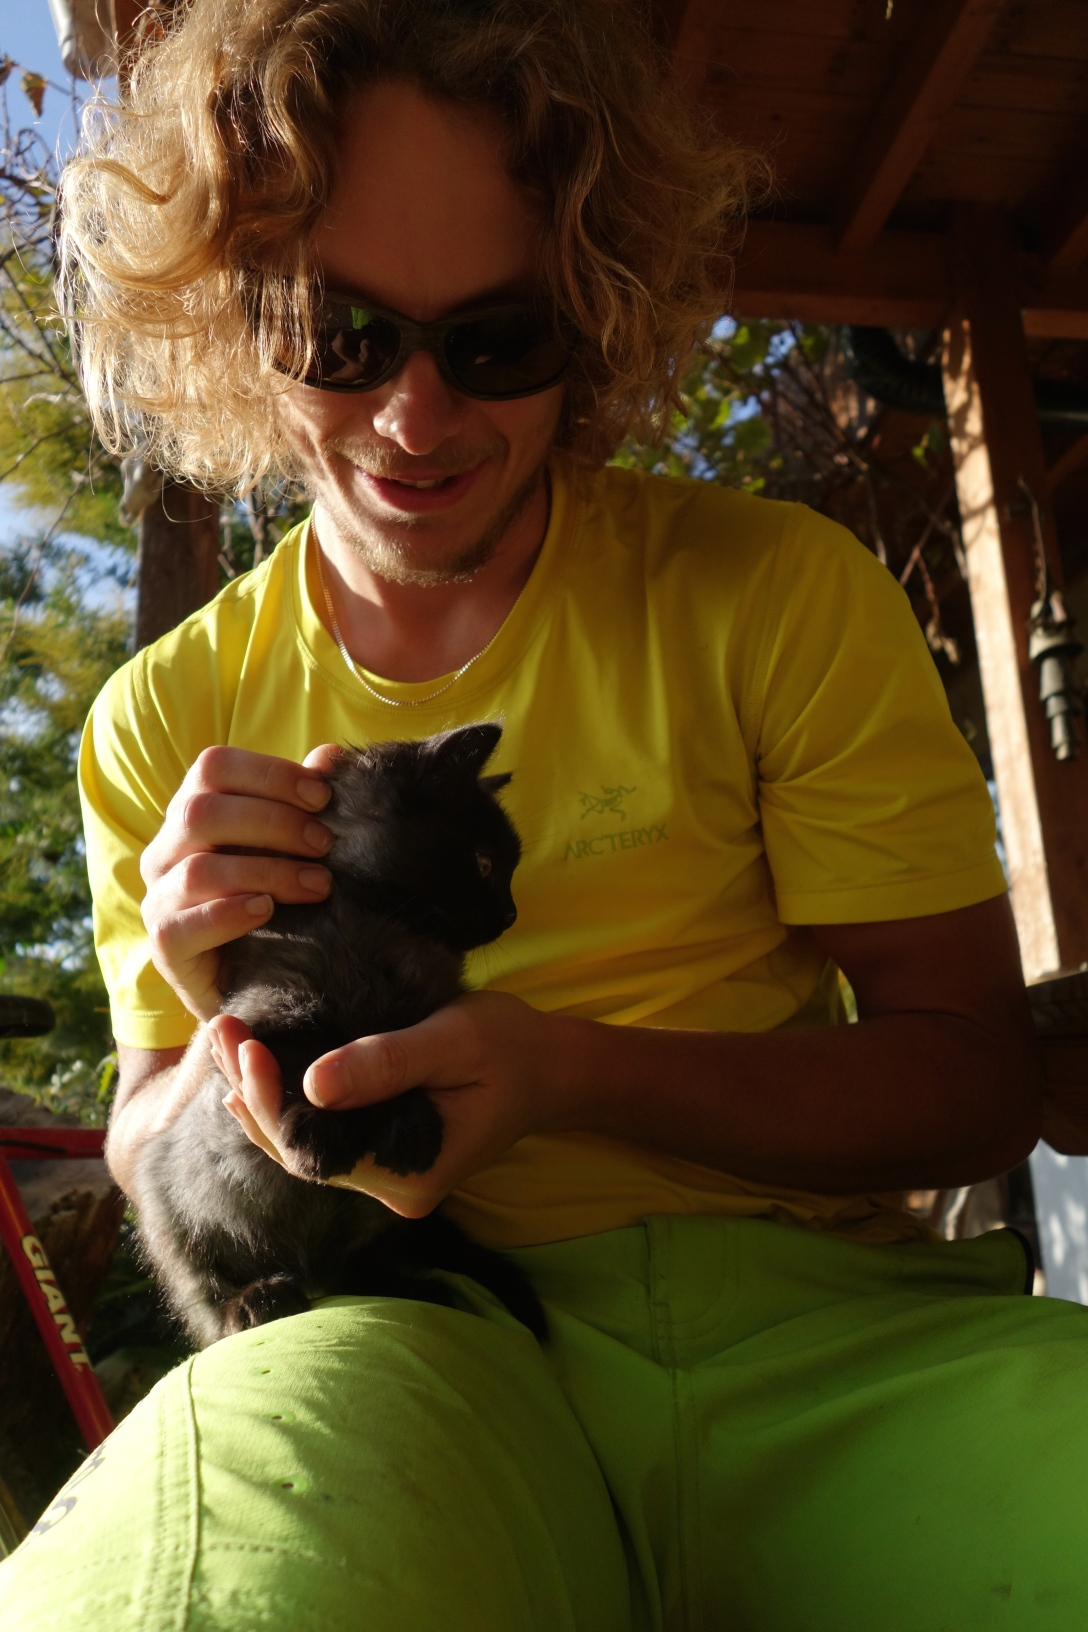 Martin hanging out with cute cat